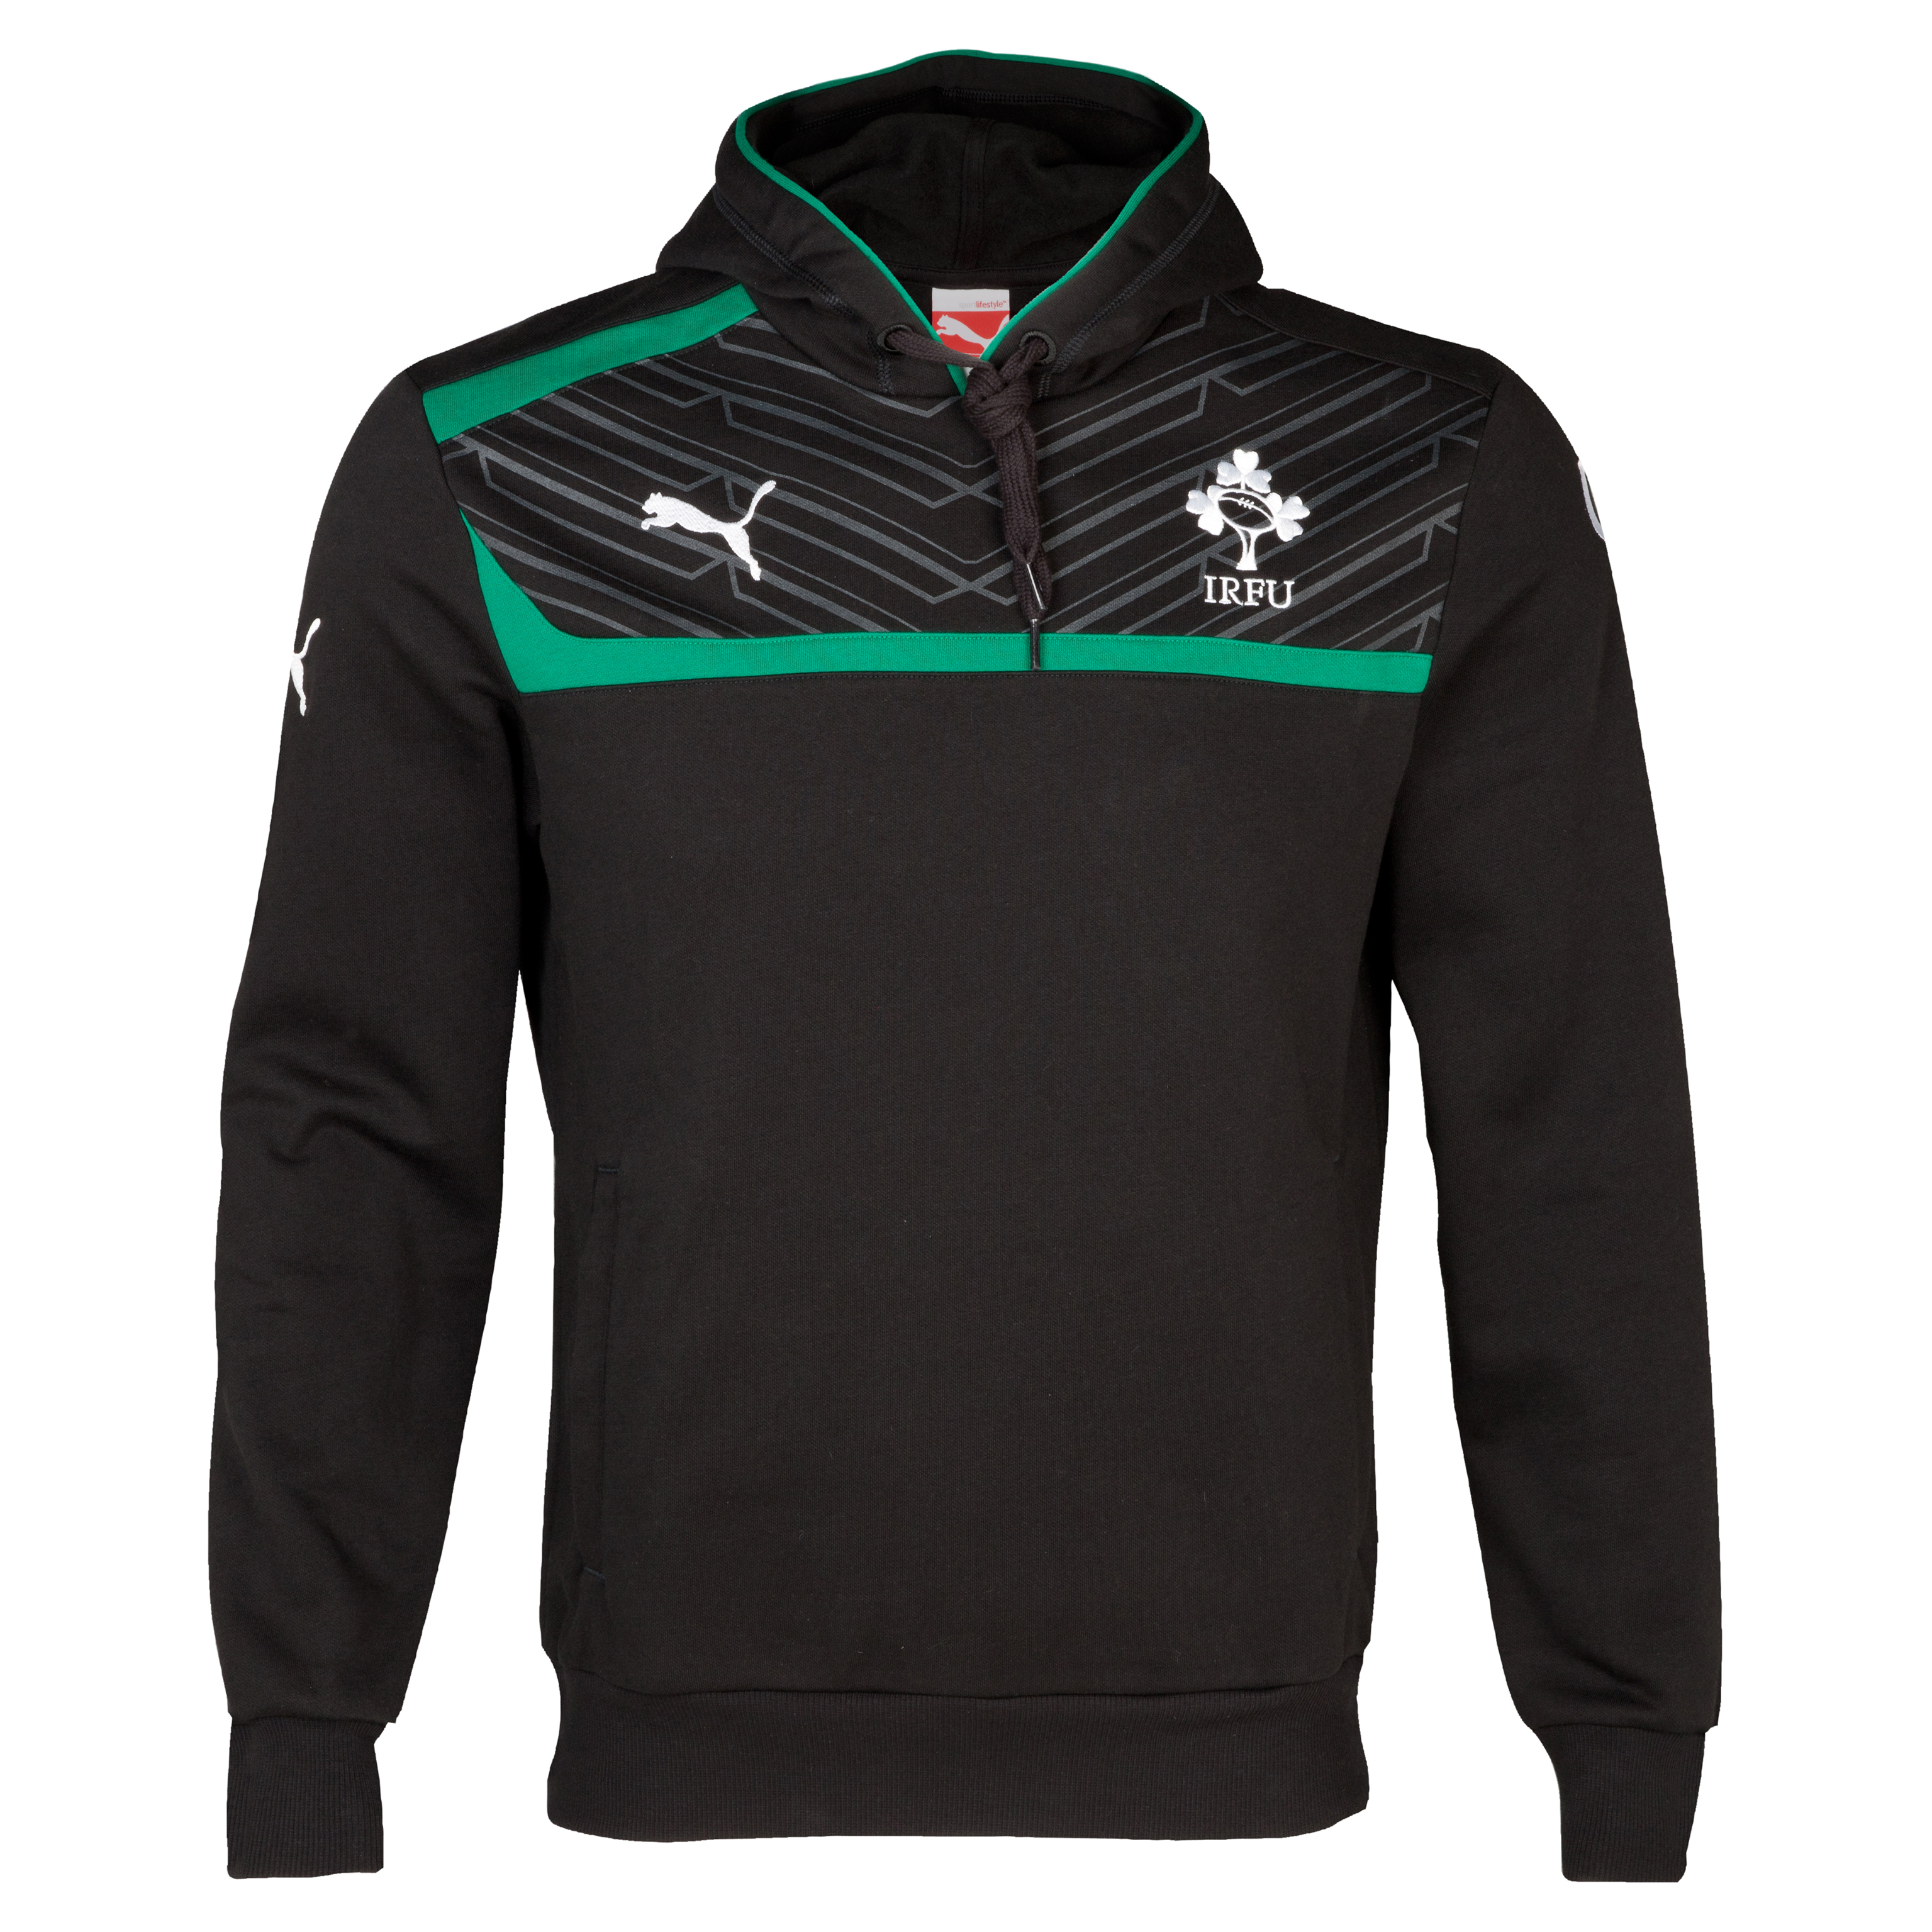 Ireland Rugby Hoody - Black/Green